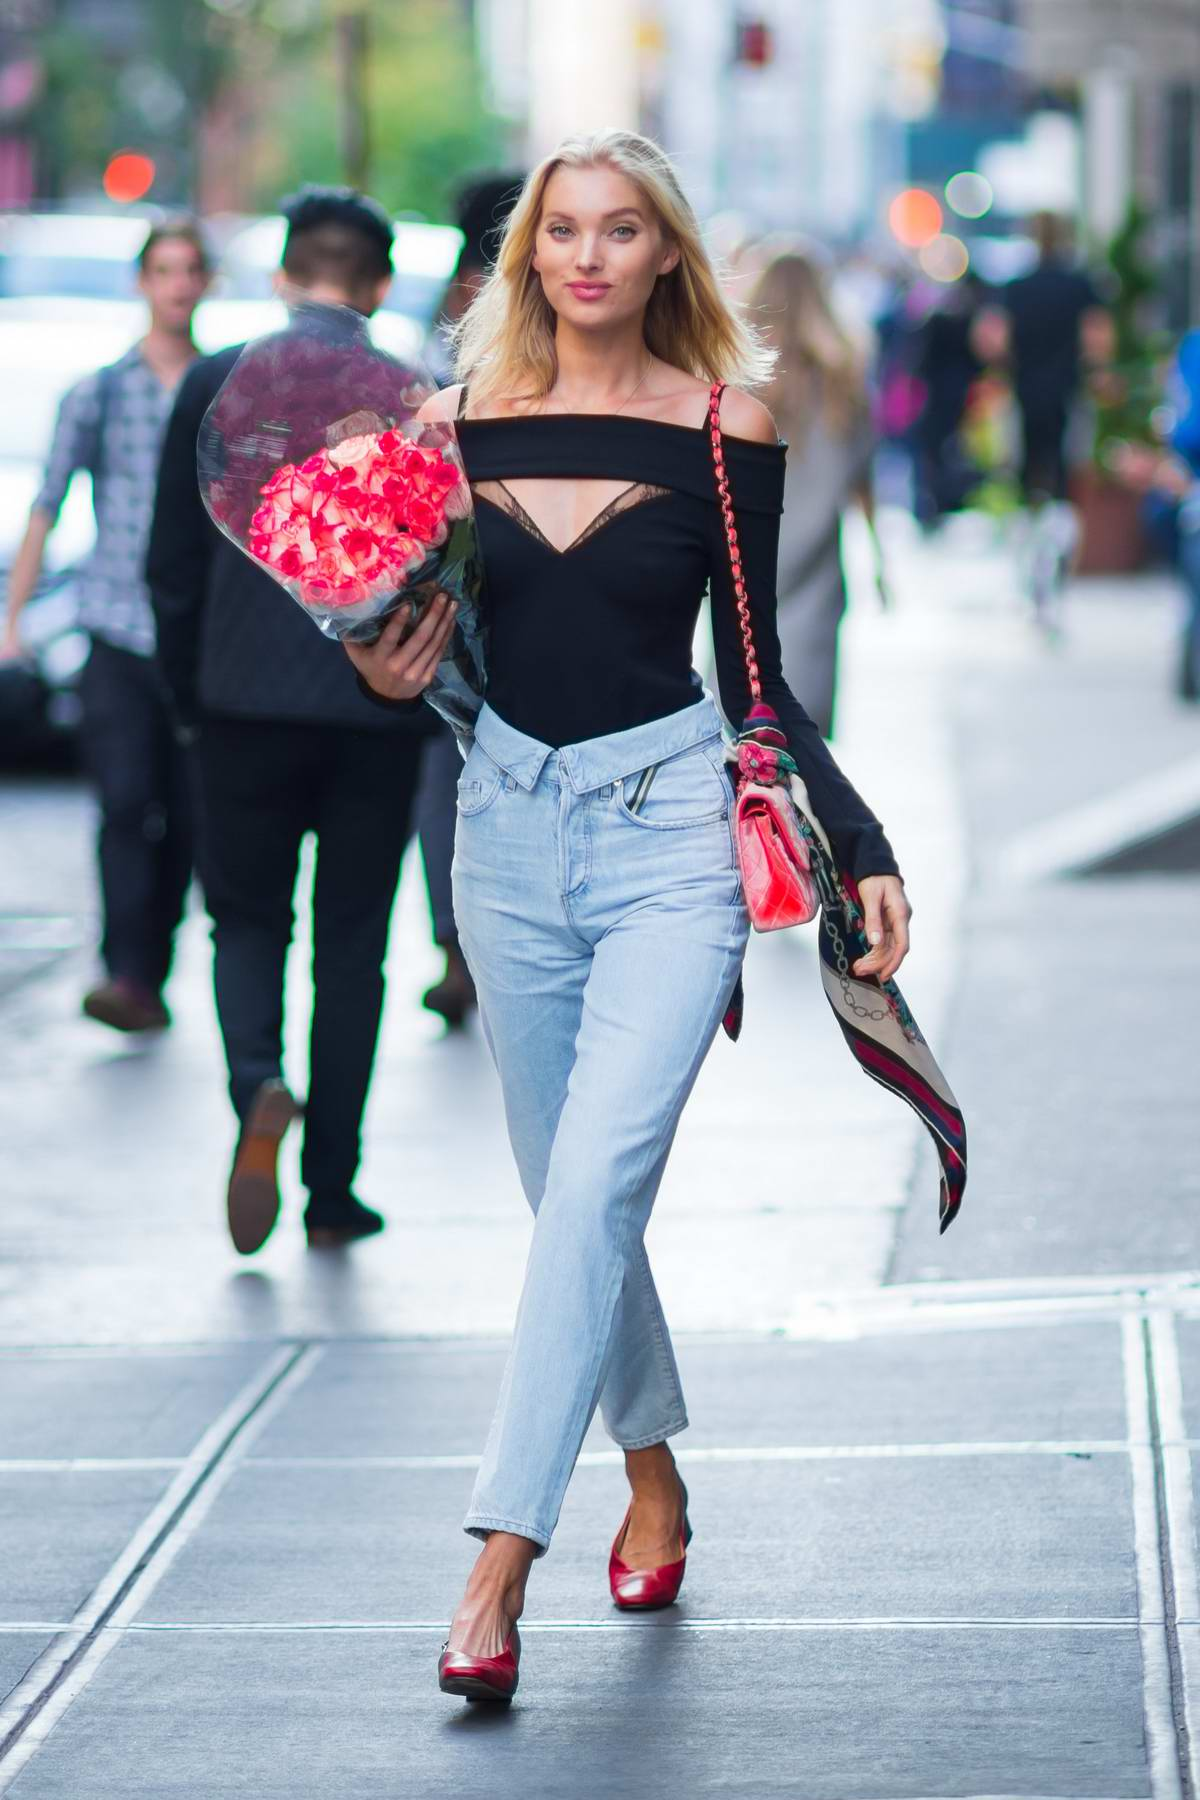 Elsa Hosk spotted with a bouquet of roses on her birthday in New York City